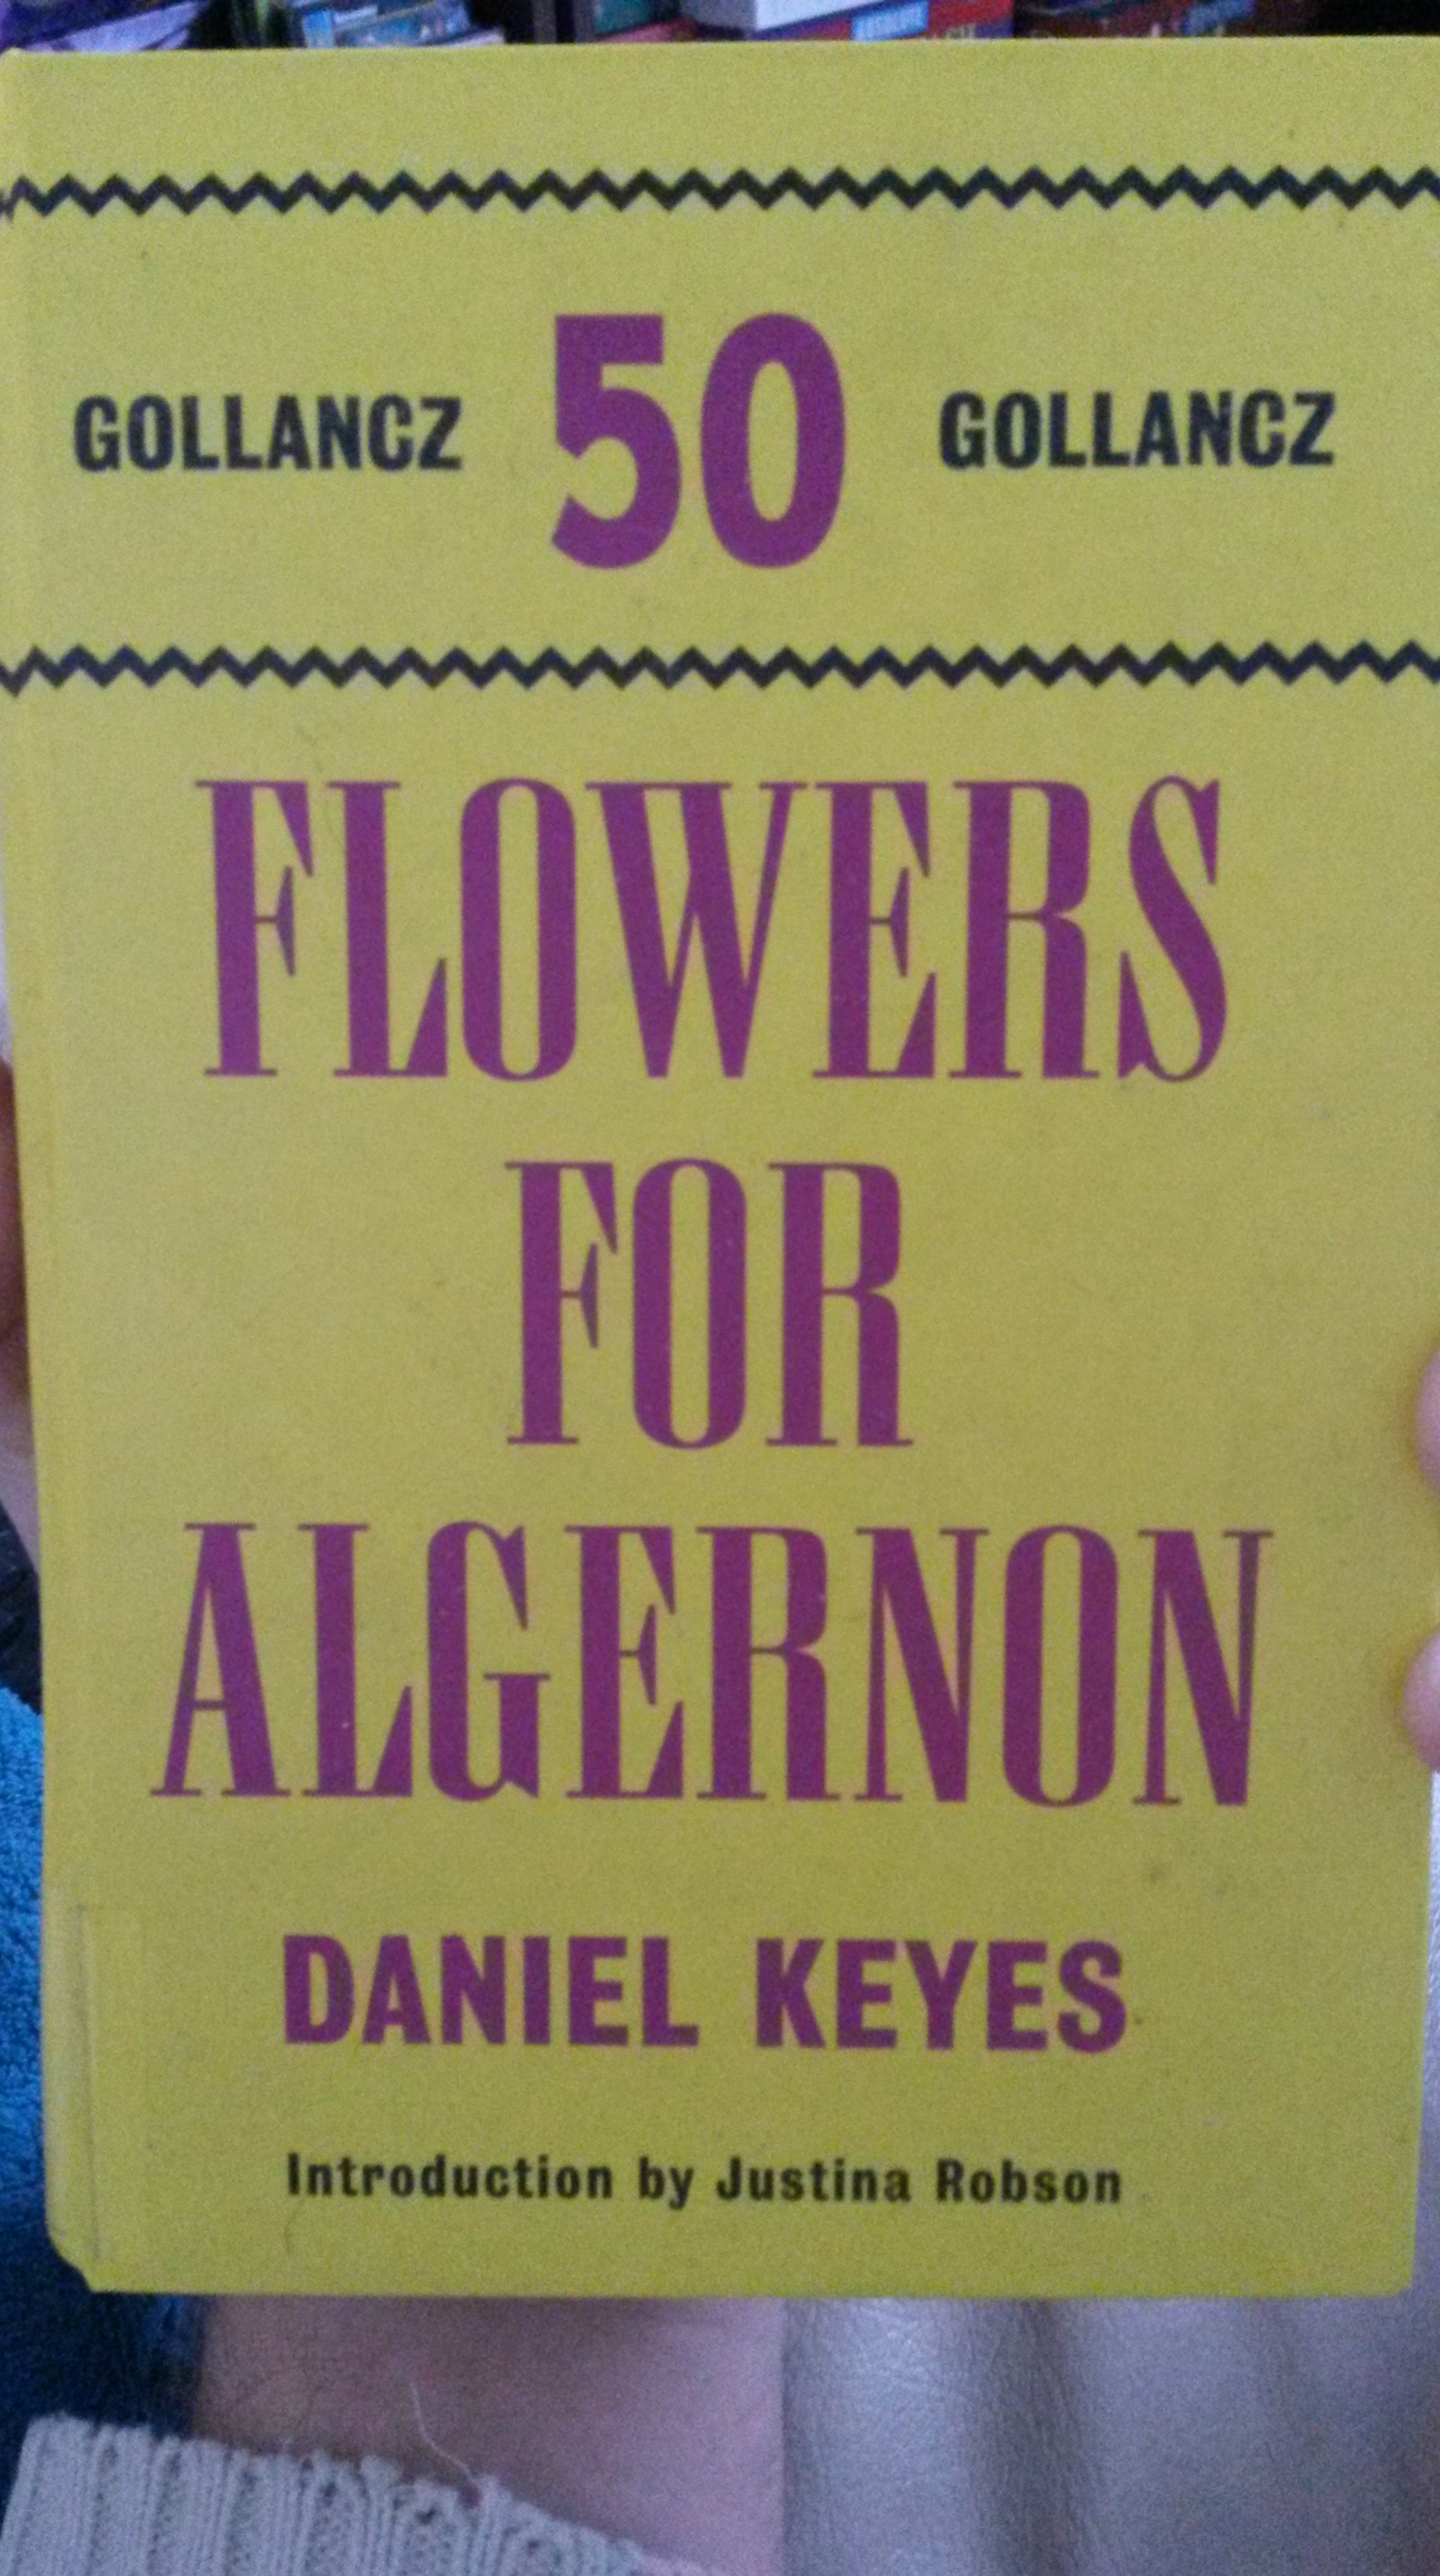 a review of flowers for algernon by daniel keyes